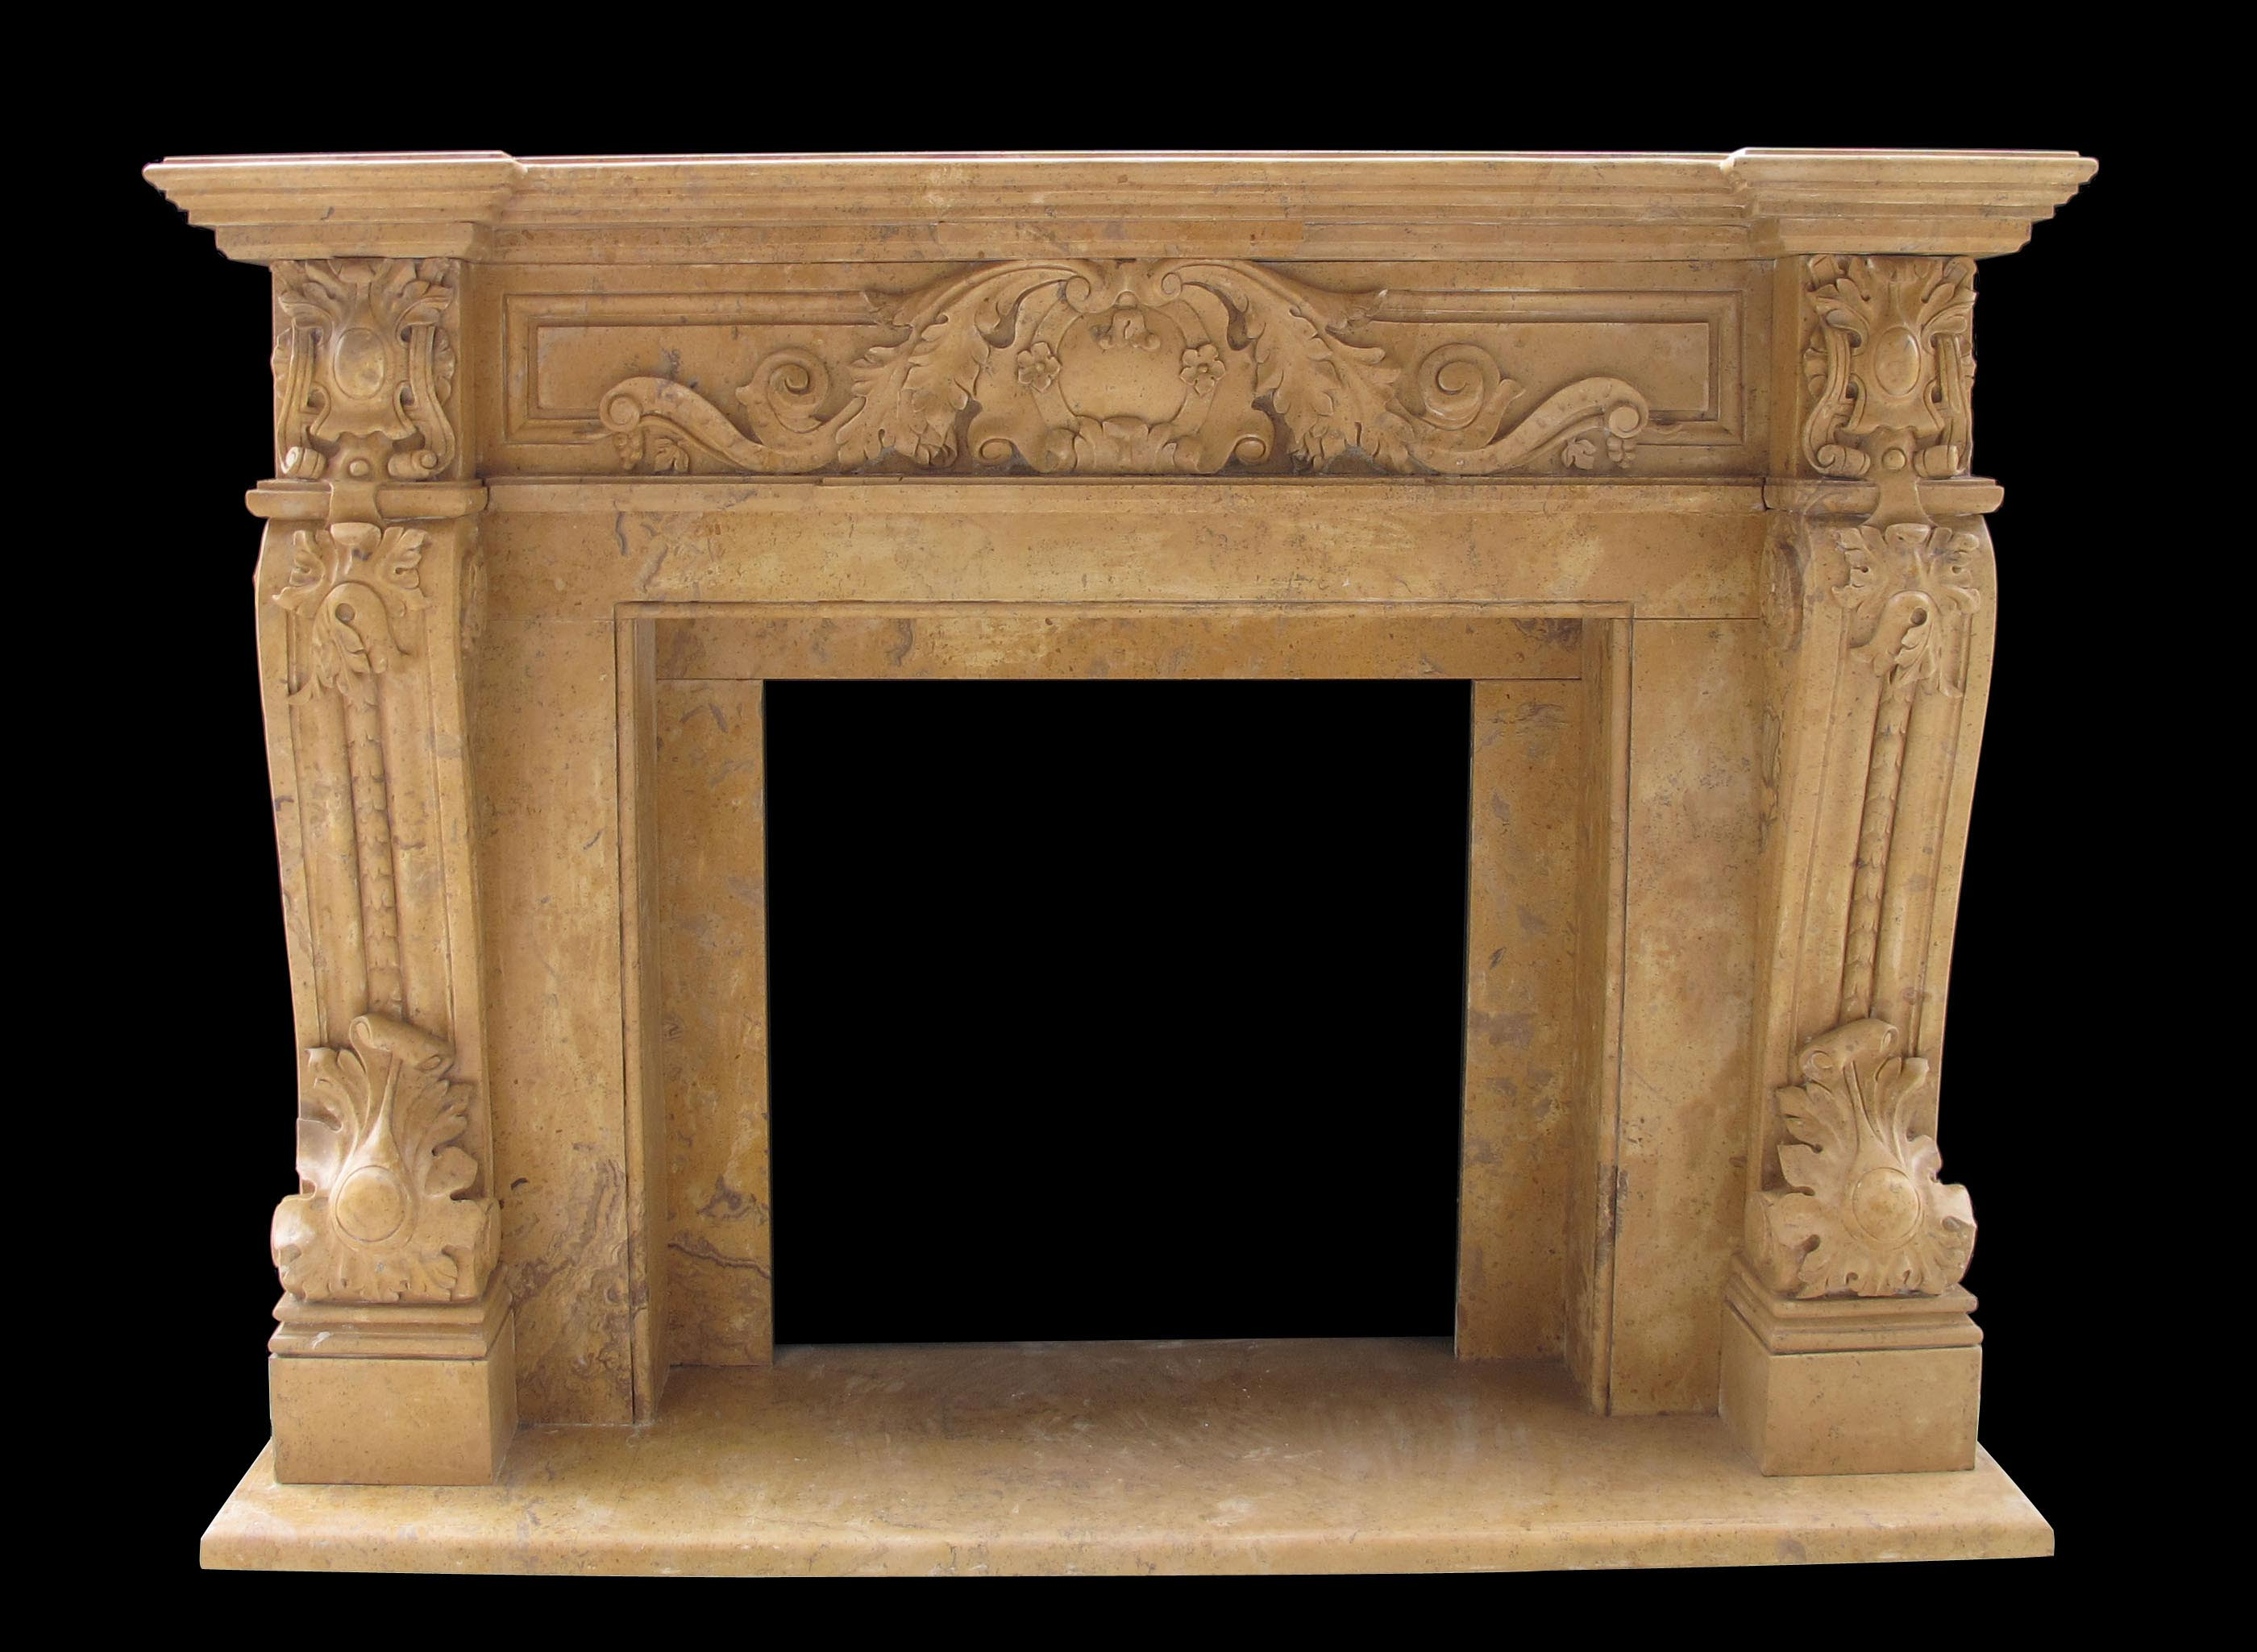 Antique Fireplace Mantels For Sale Verona Marble Mantel French Fireplace French Marble Antique